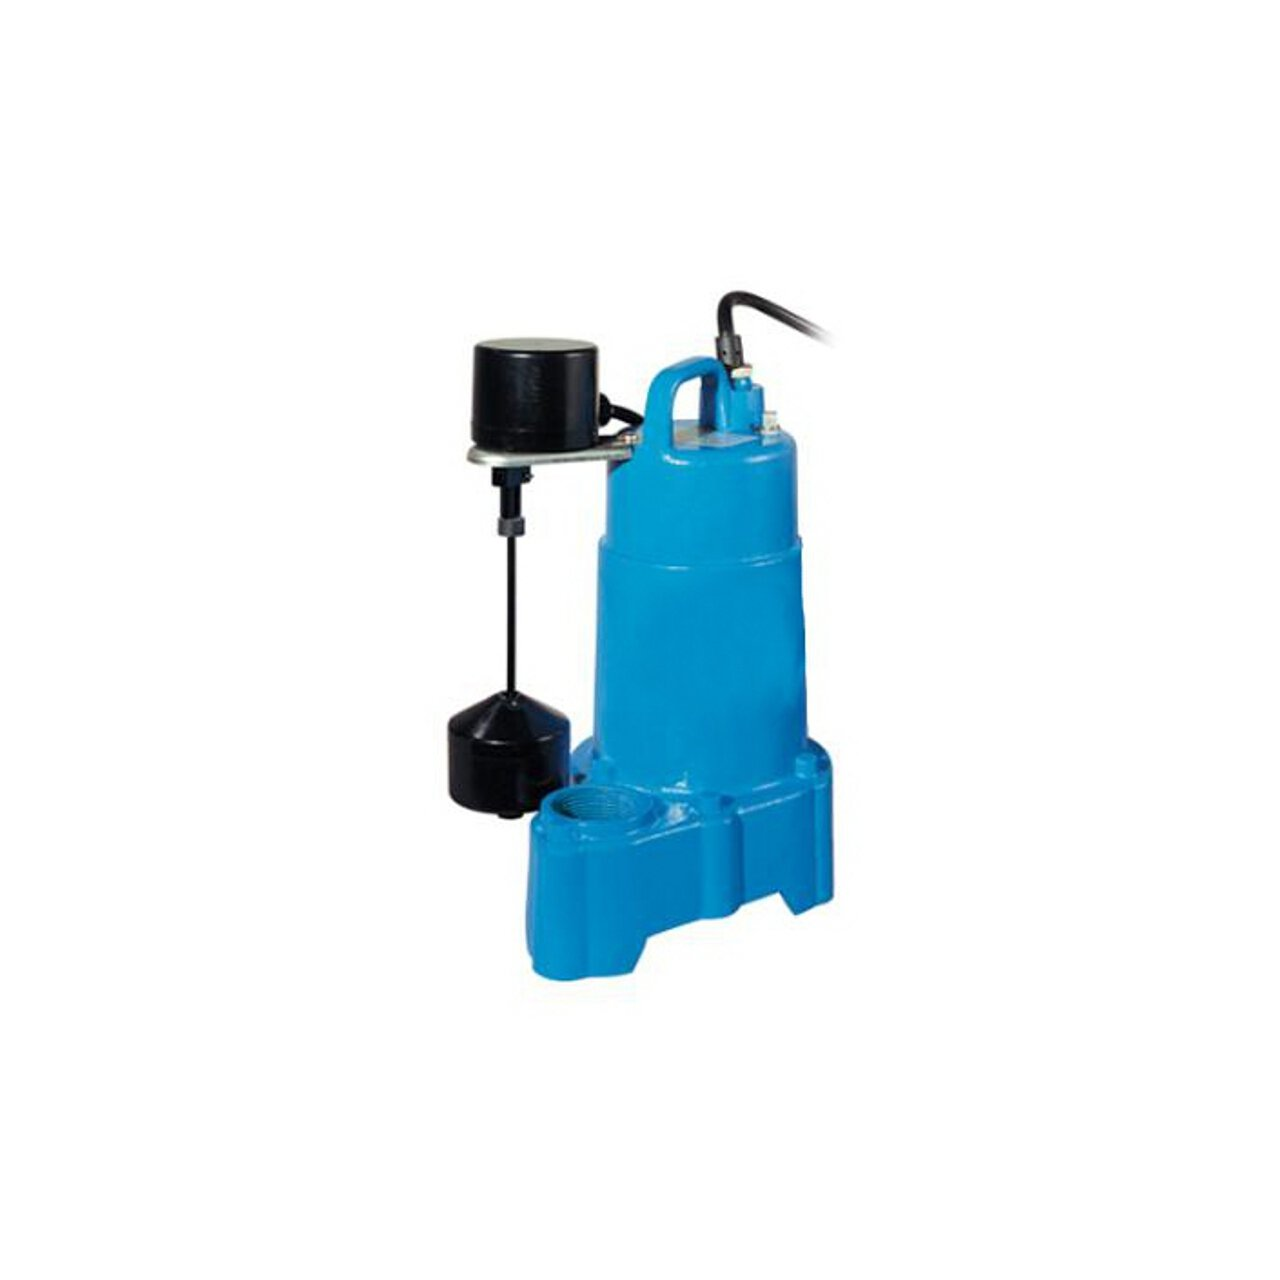 p automatic hp float submersible sump large barnes pump effluent volts cord discharge wide barns angle npt phase rpm model with switch ft